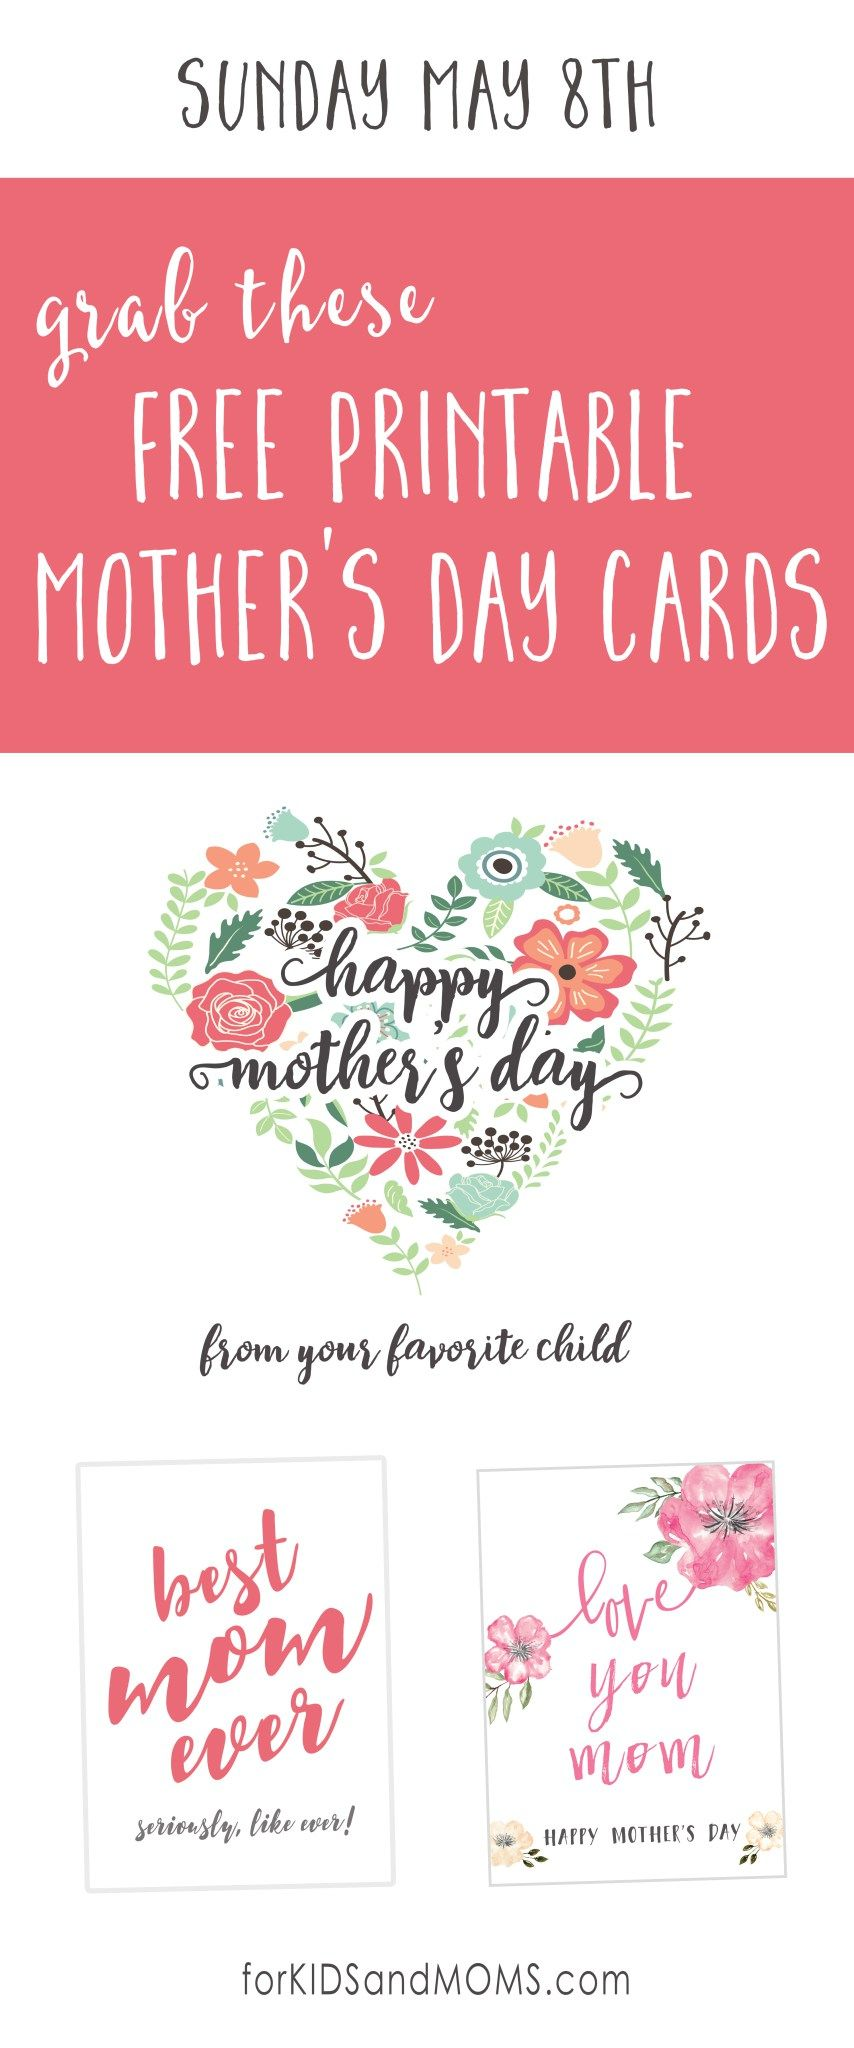 mothers day messages and free printable mothers day cards forkidsandmoms diy ideas and. Black Bedroom Furniture Sets. Home Design Ideas